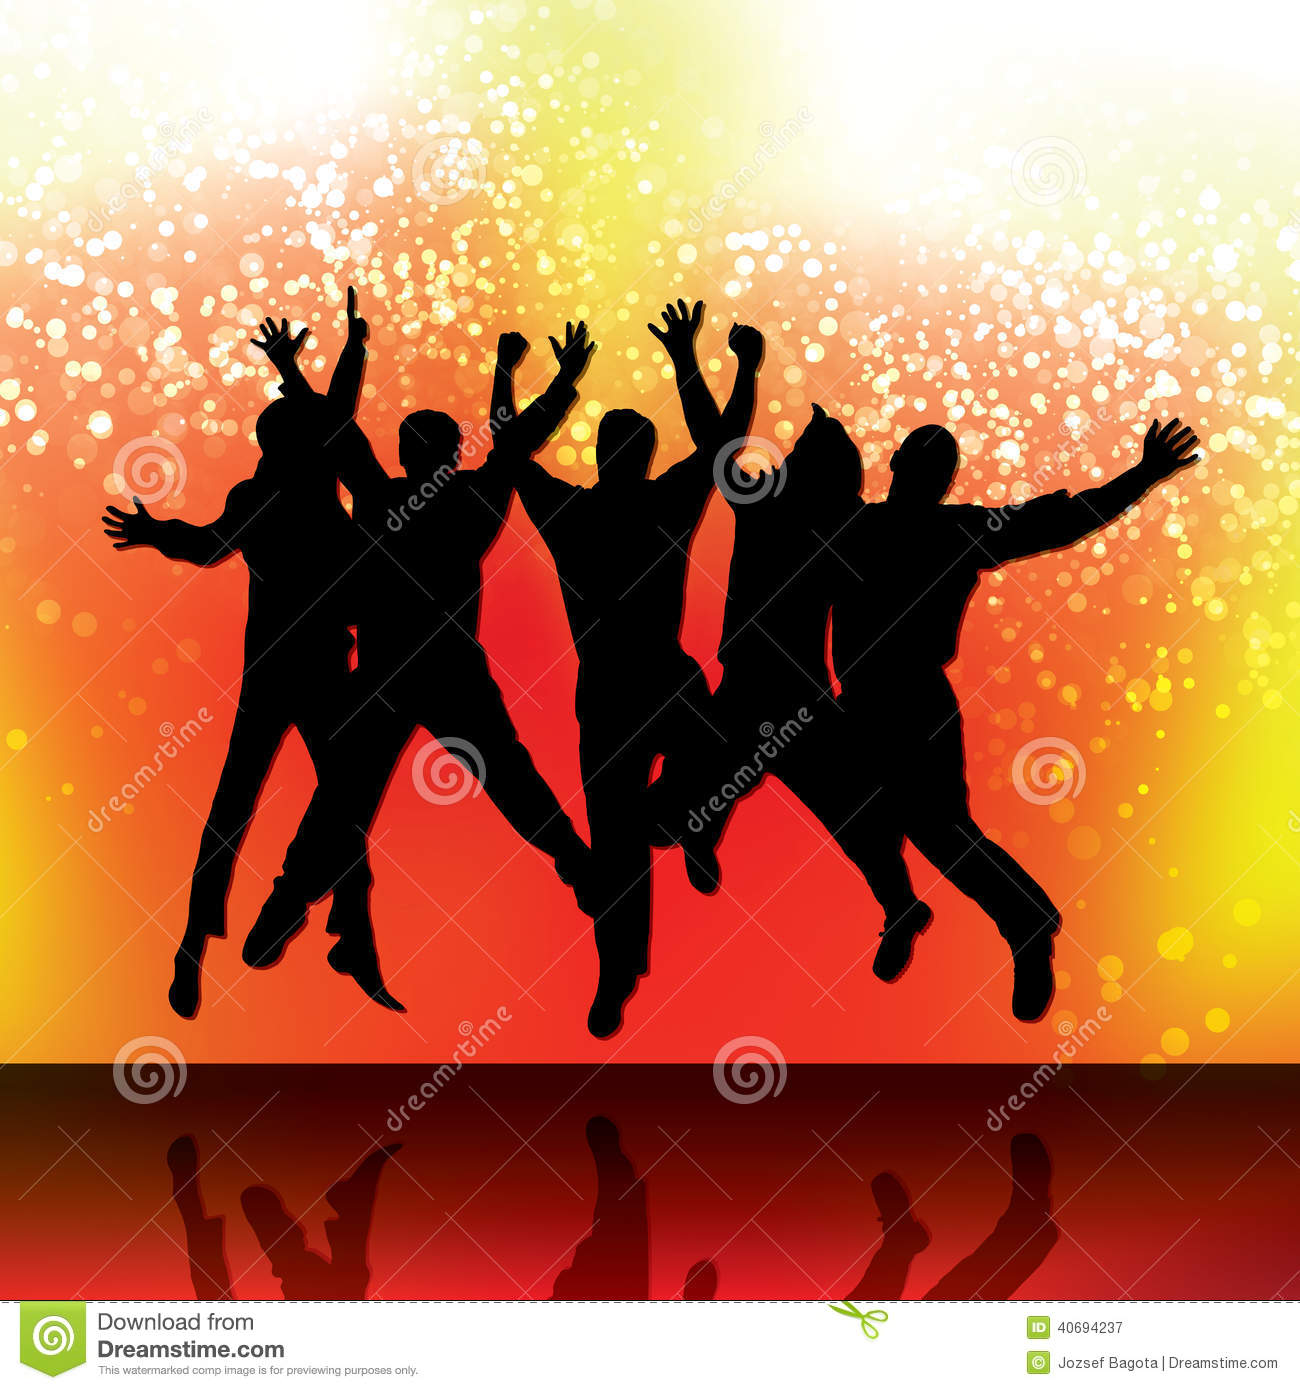 Party People Vector Background Stock Vector - Image: 40694237